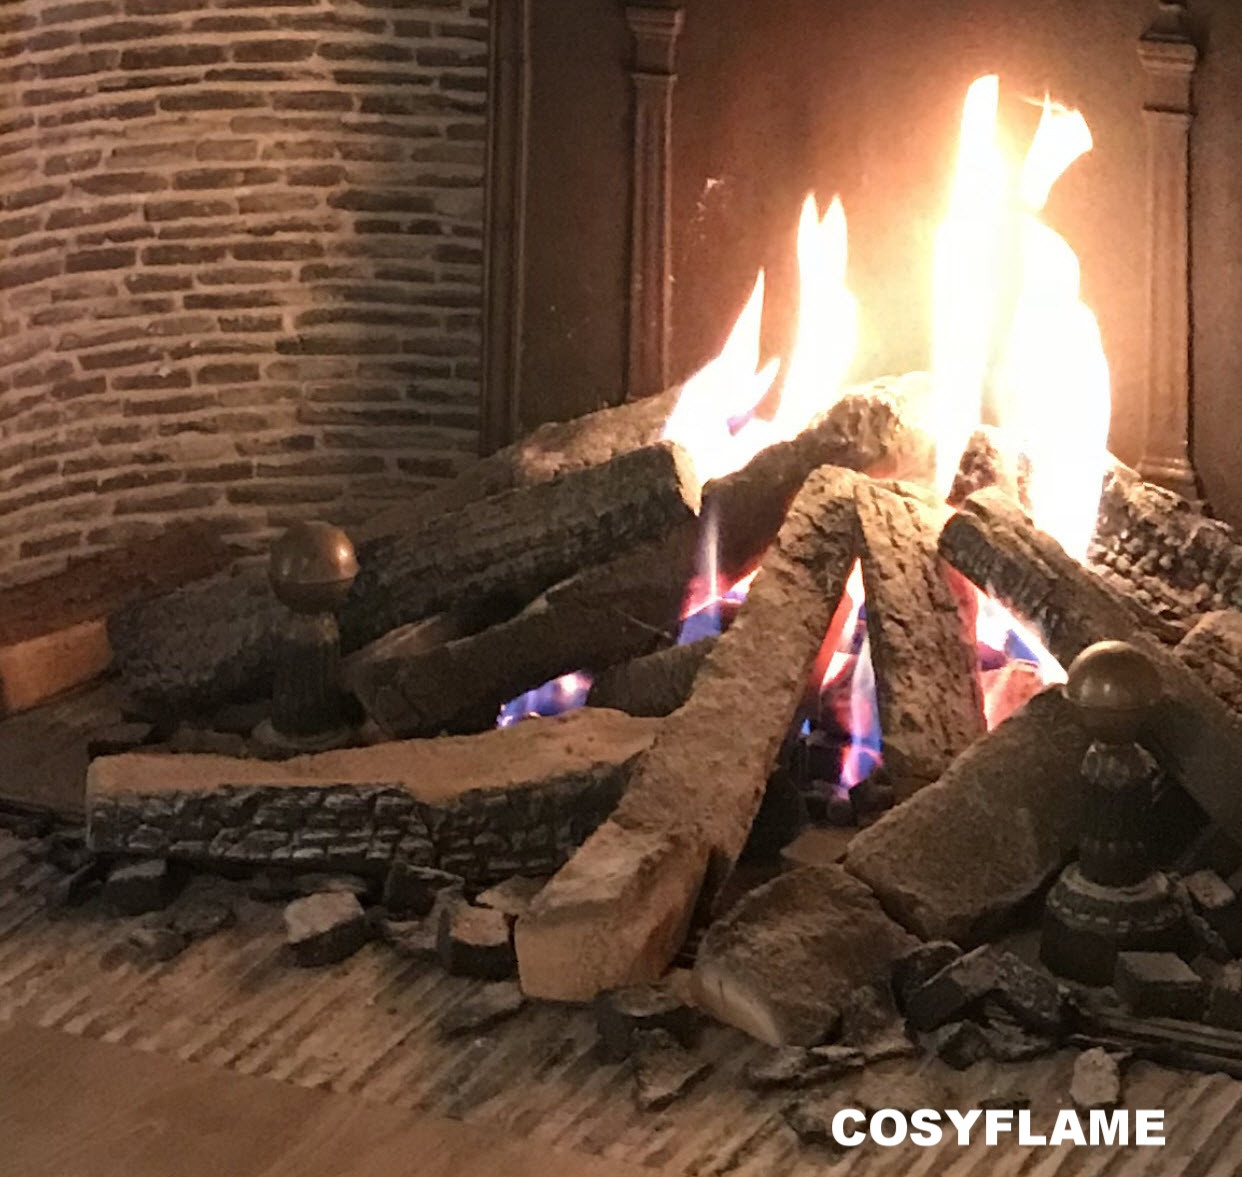 Cosyflame-3Dset.jpeg